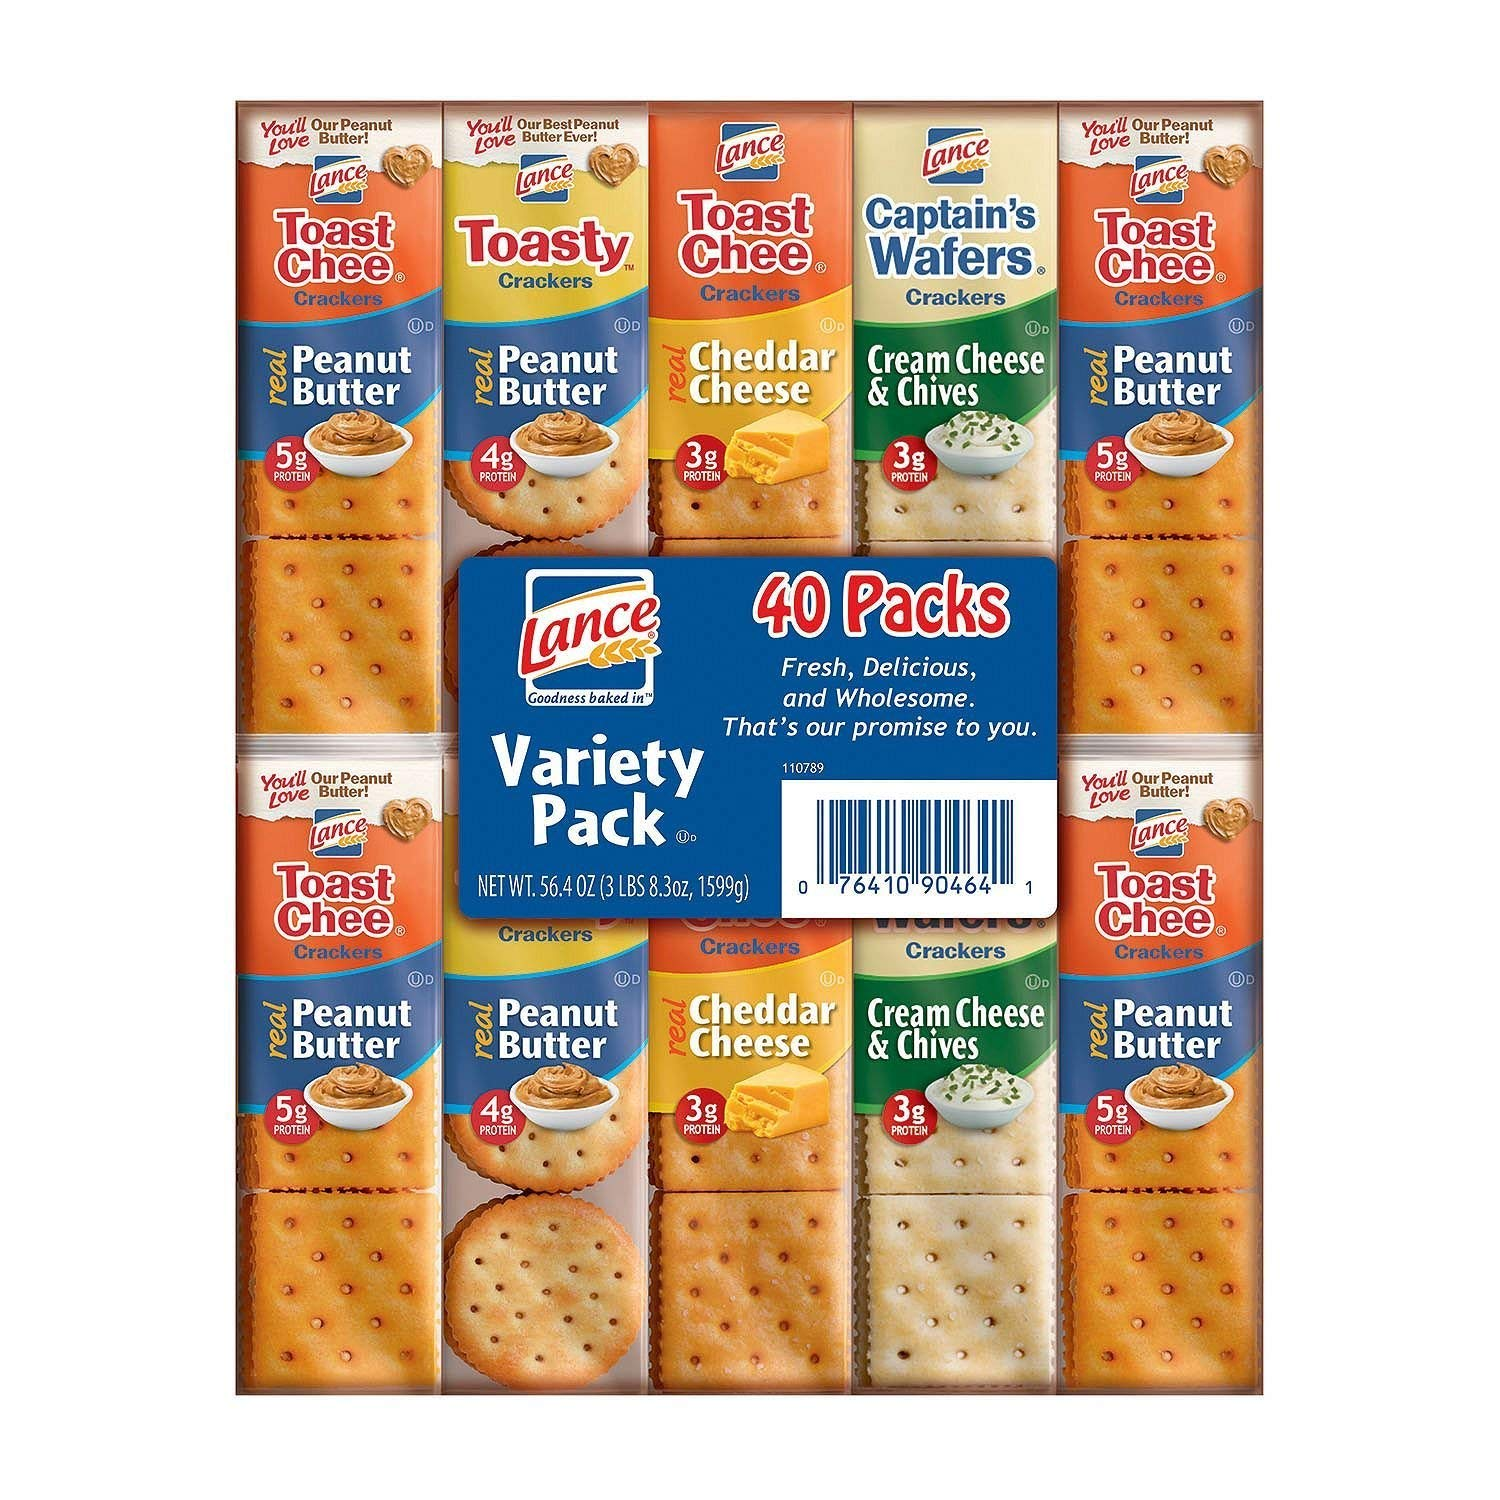 Lance Variety Pack,40 count, (56.8 oz total weight) (4 Pack (40ct)) by Lance